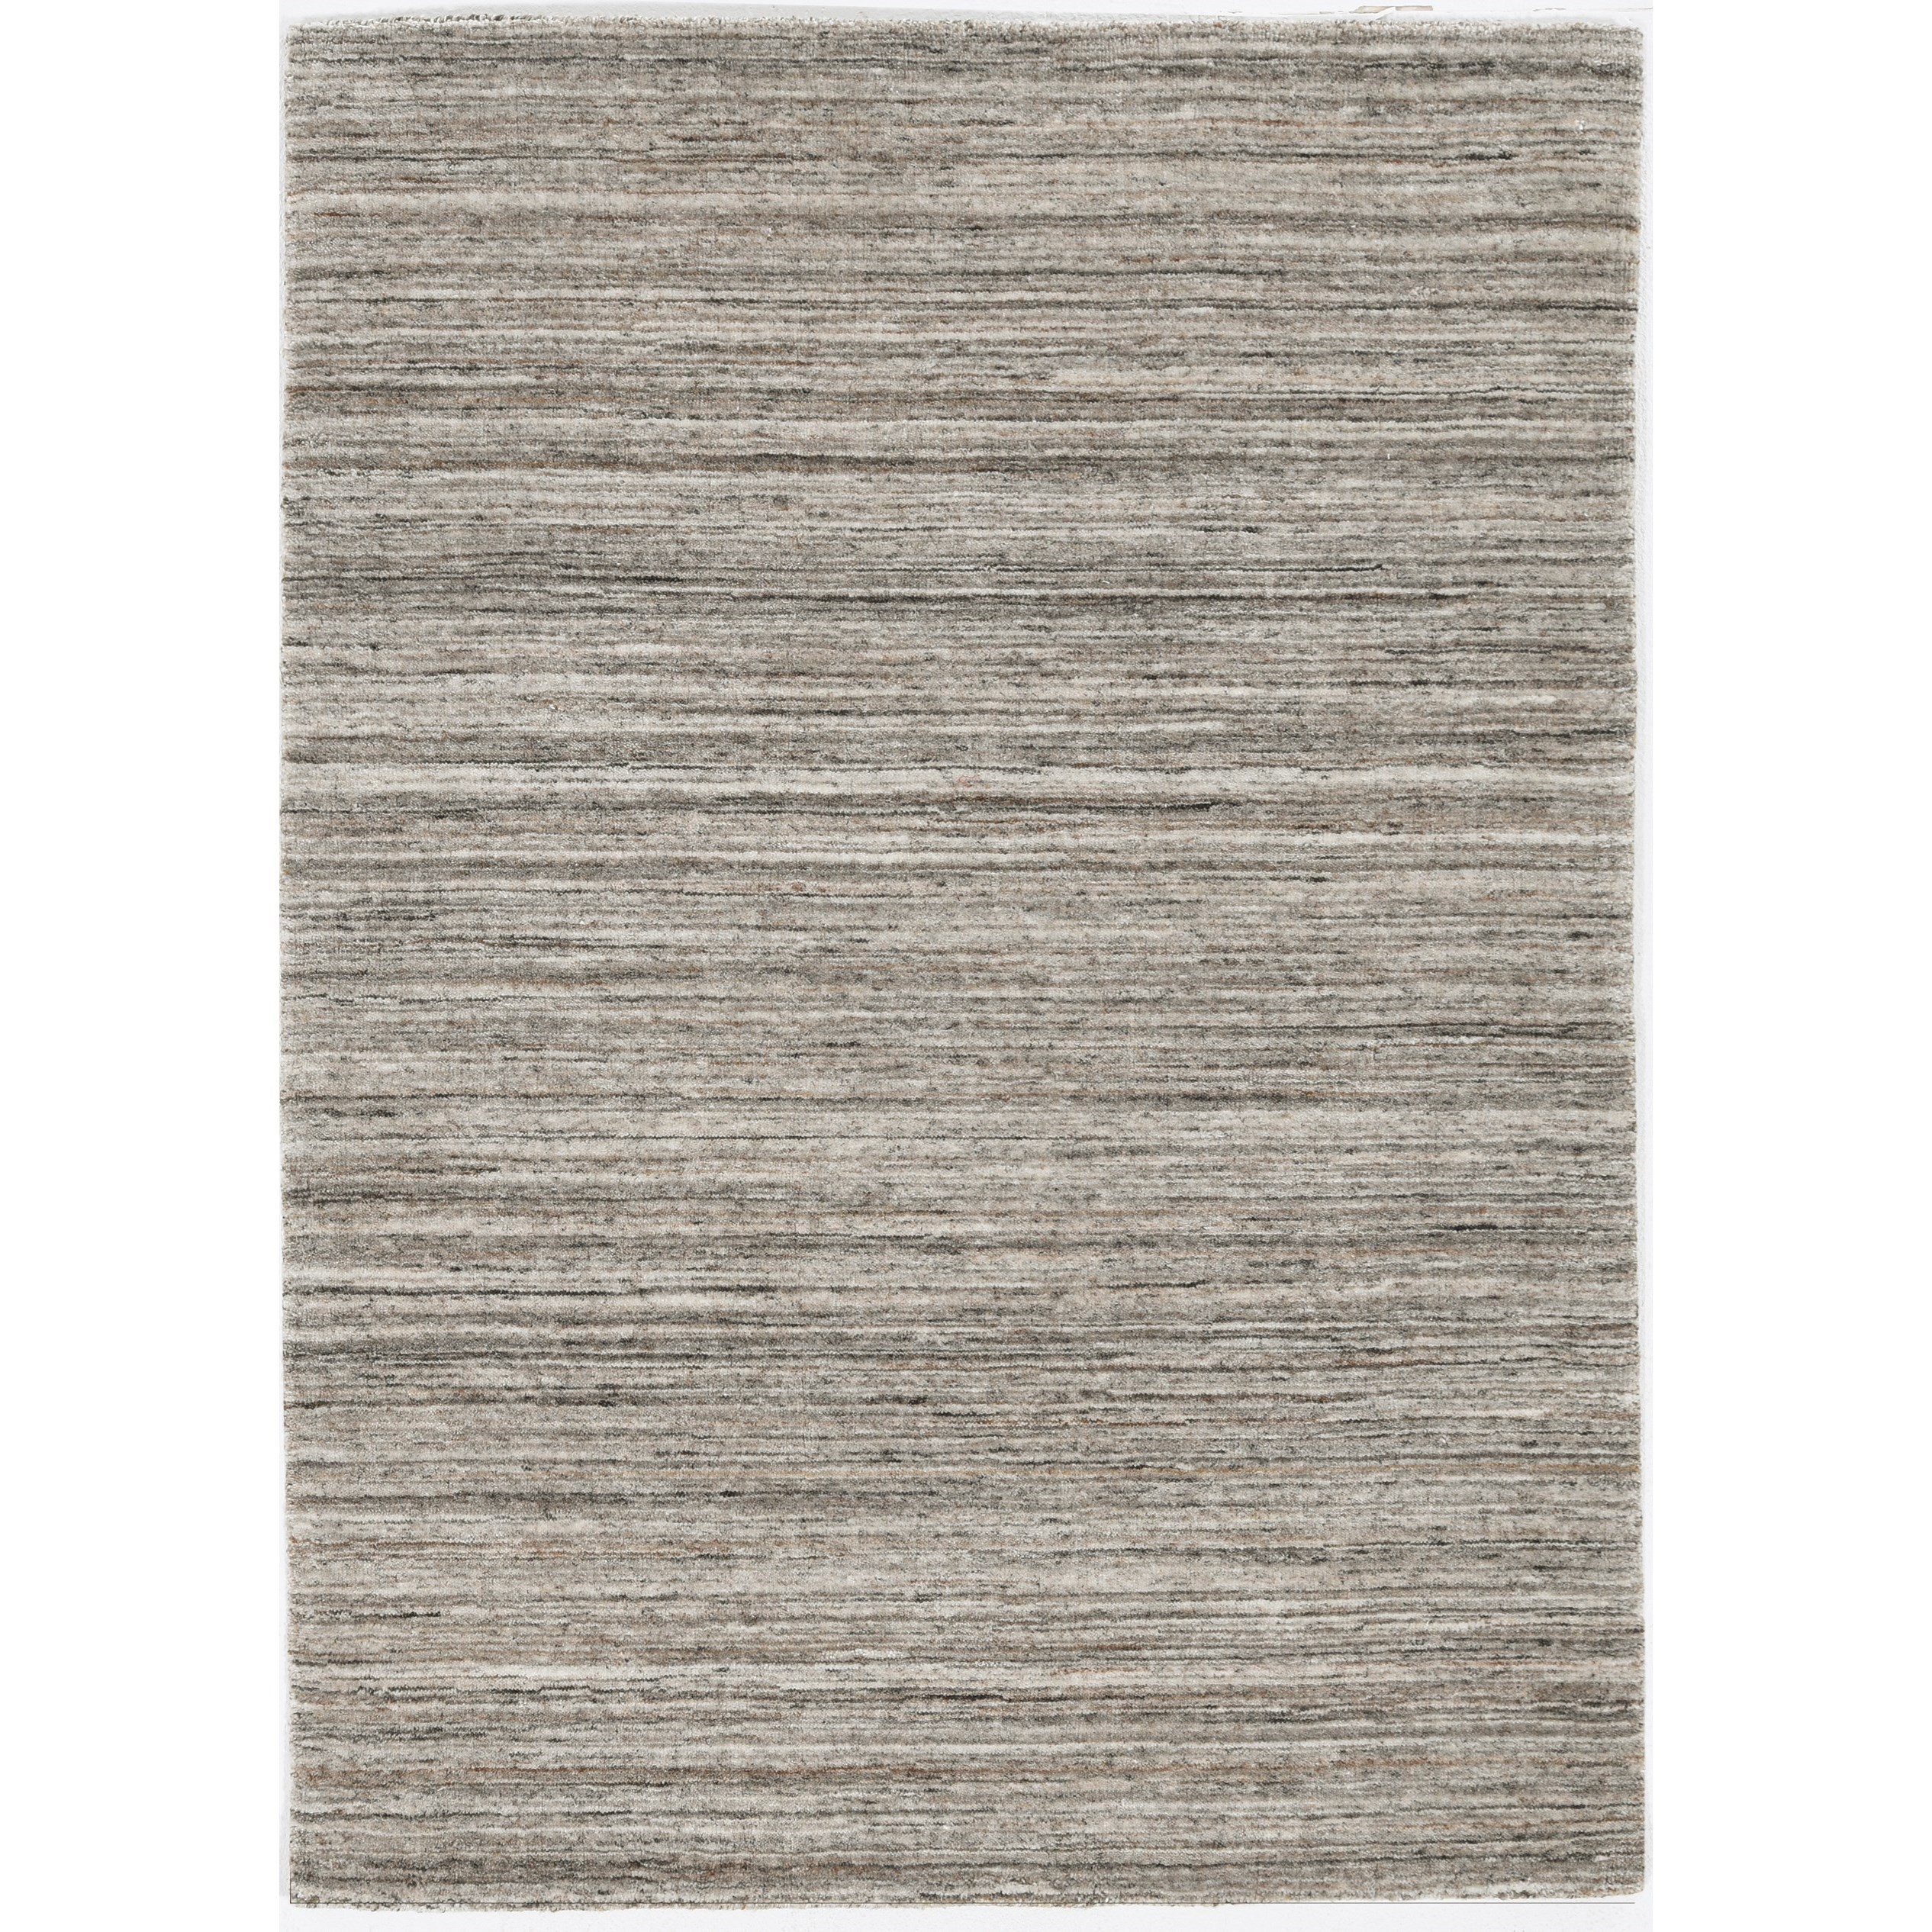 Dune 8' x 10' Sand Villa Rug by Kas at Darvin Furniture